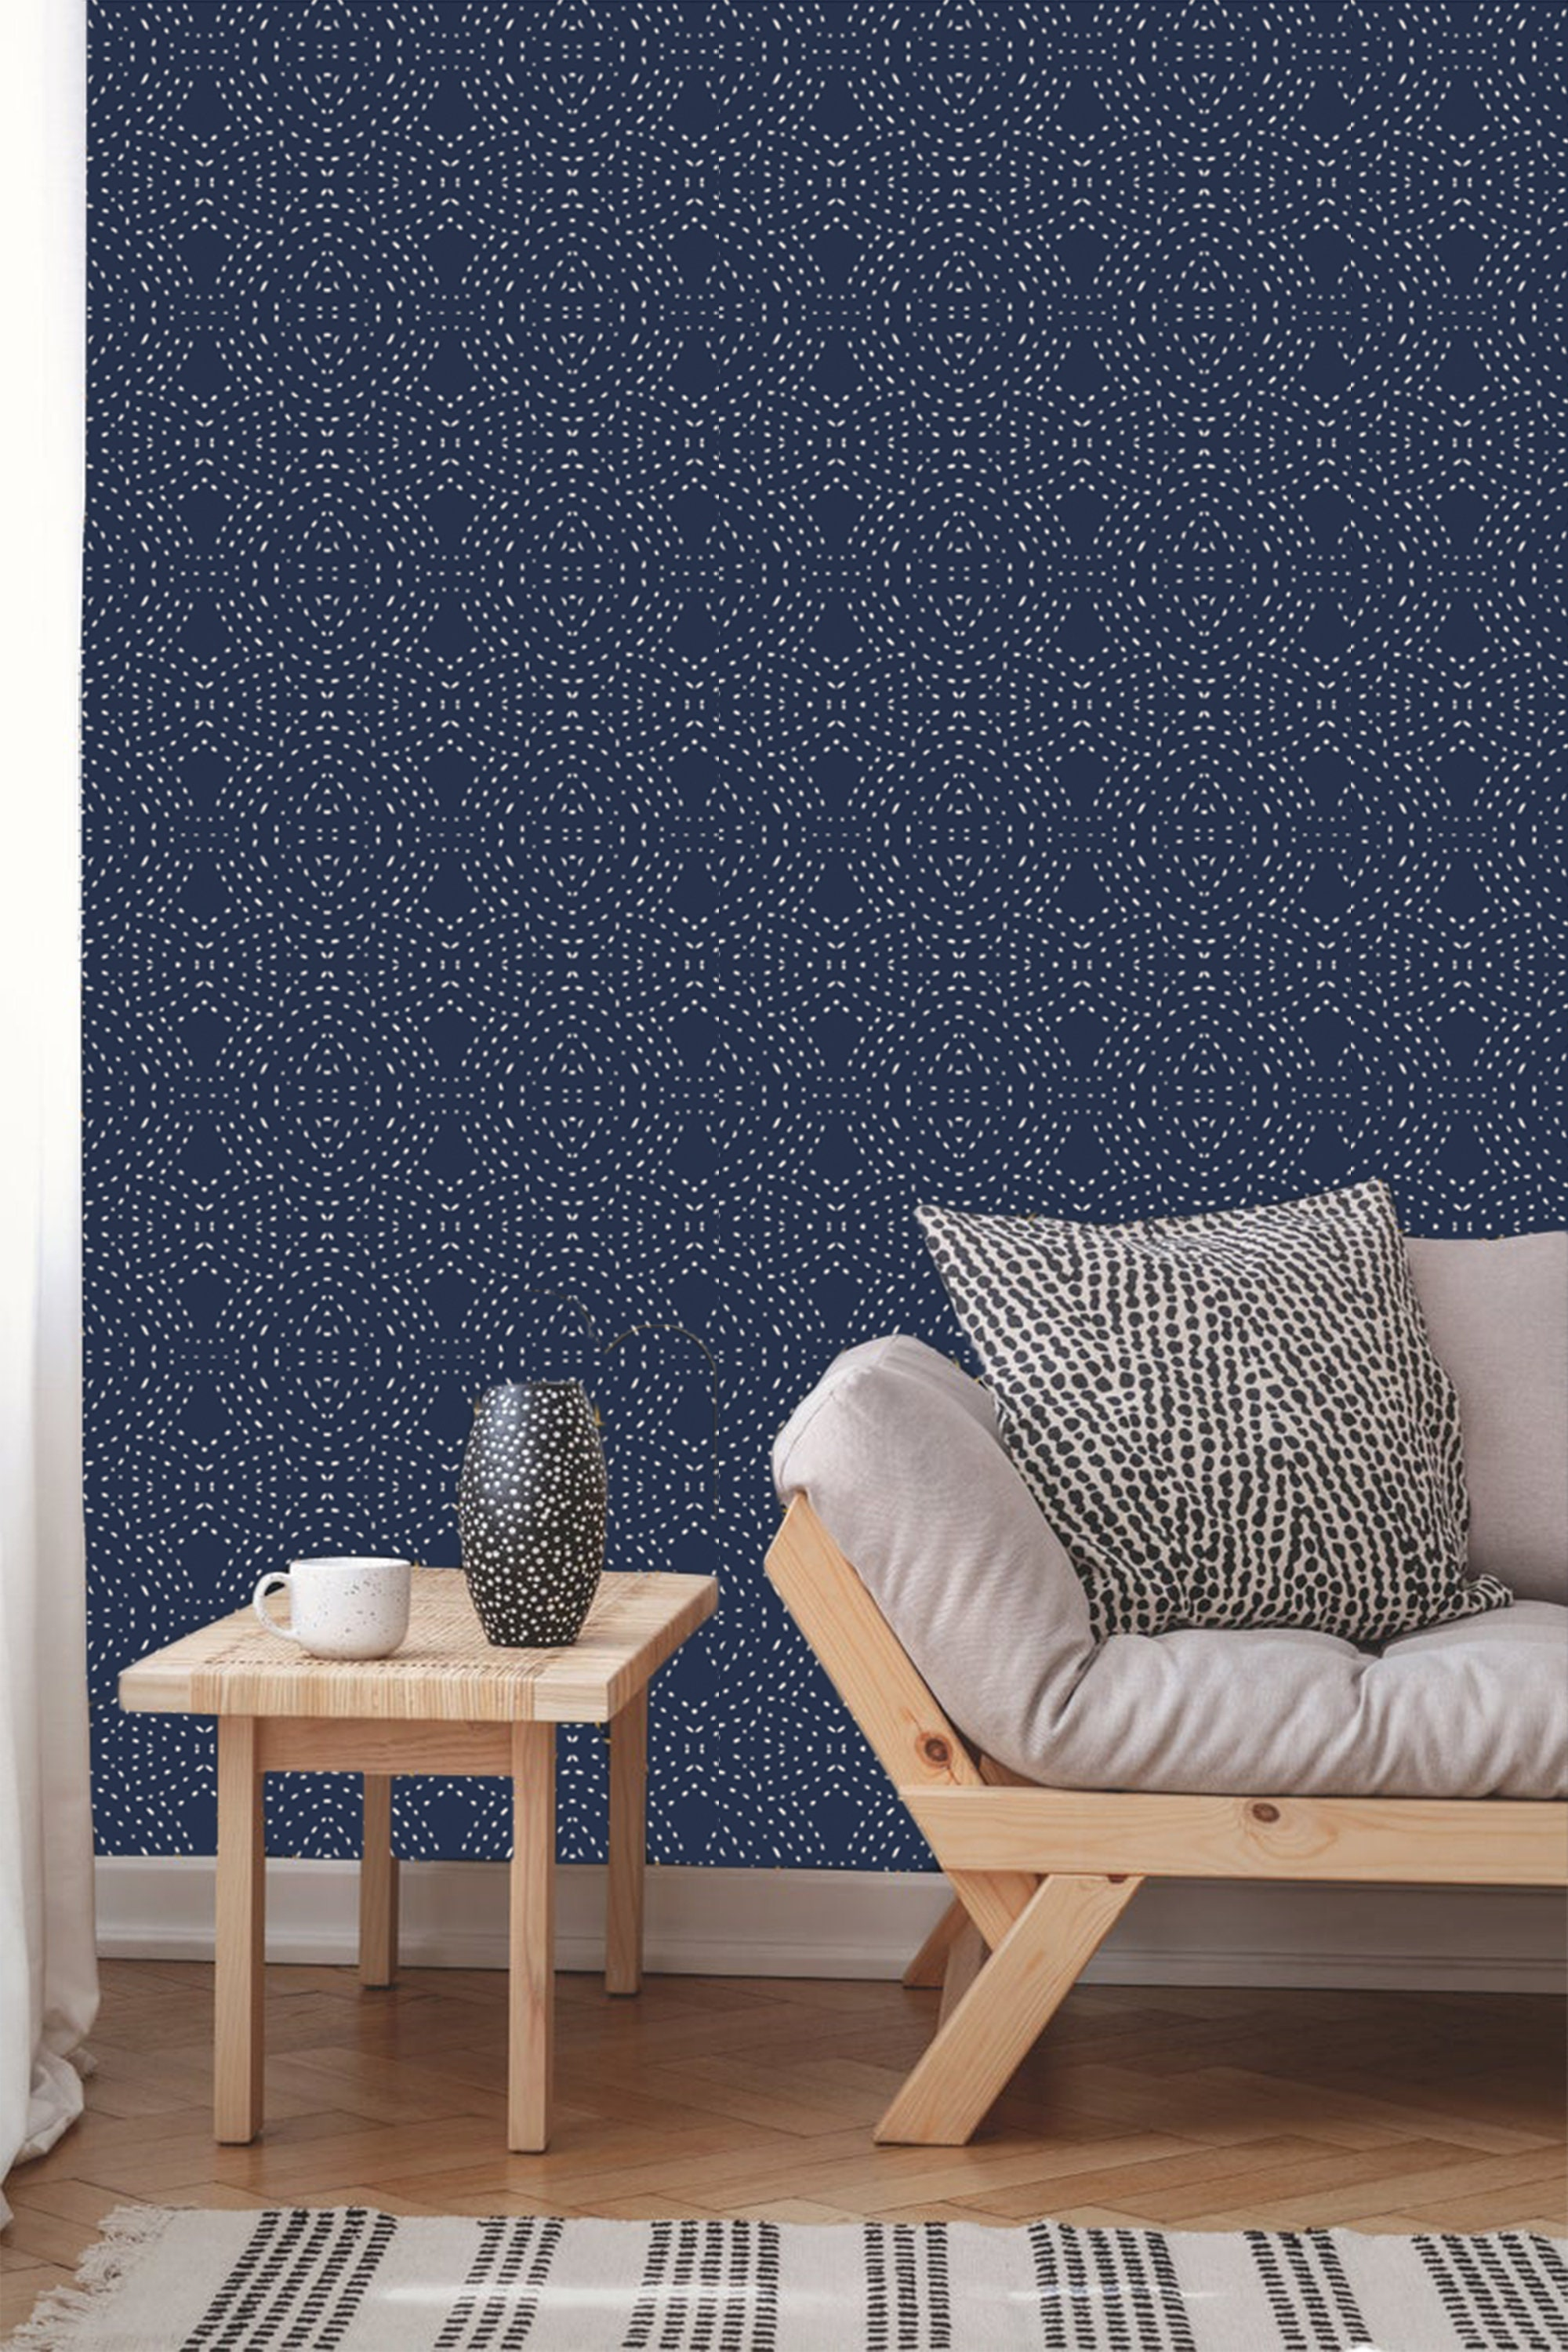 Navy Bohemian Abstract Wallpaper Removable Traditional Wallpaper Peel And Stick Wallpaper Blue Wallpaper Self Adhesive Wallpaper